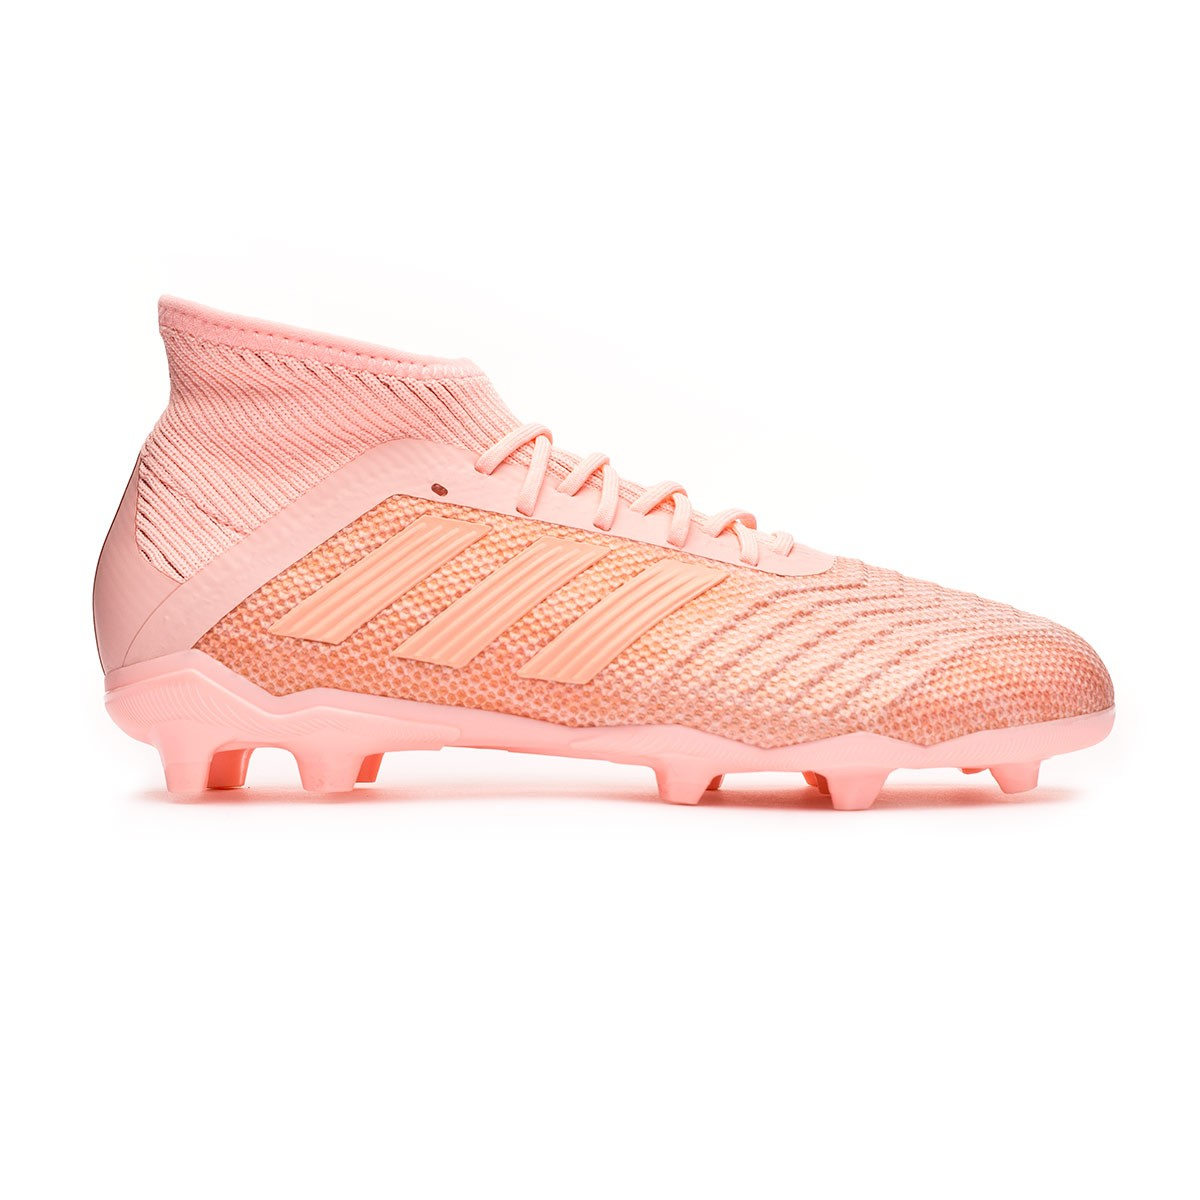 2ed790c64565 Football Boots adidas Kids Predator 18.1 FG Clear orange-Trace pink -  Football store Fútbol Emotion